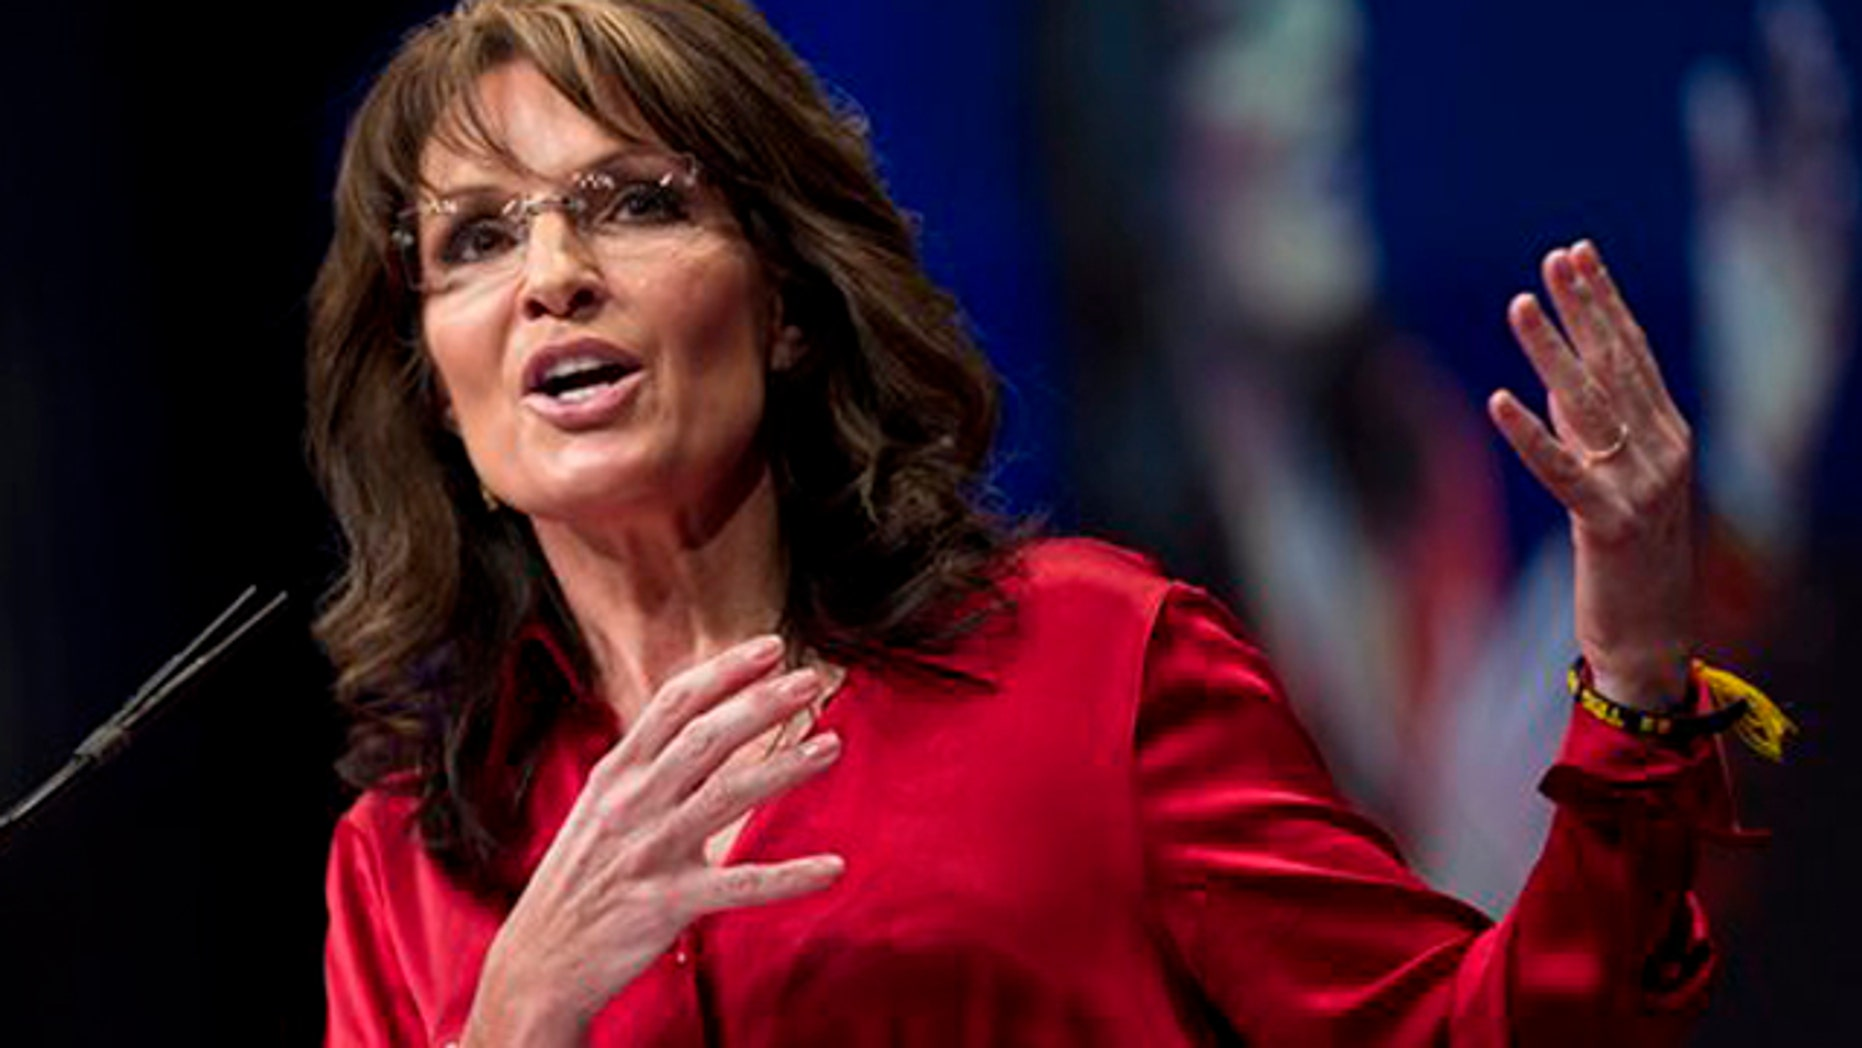 Feb. 11, 2012: Sarah Palin, the GOP candidate for vice-president in 2008, and former Alaska governor, delivers the keynote address to activists from America's political right at the Conservative Political Action Conference (CPAC).